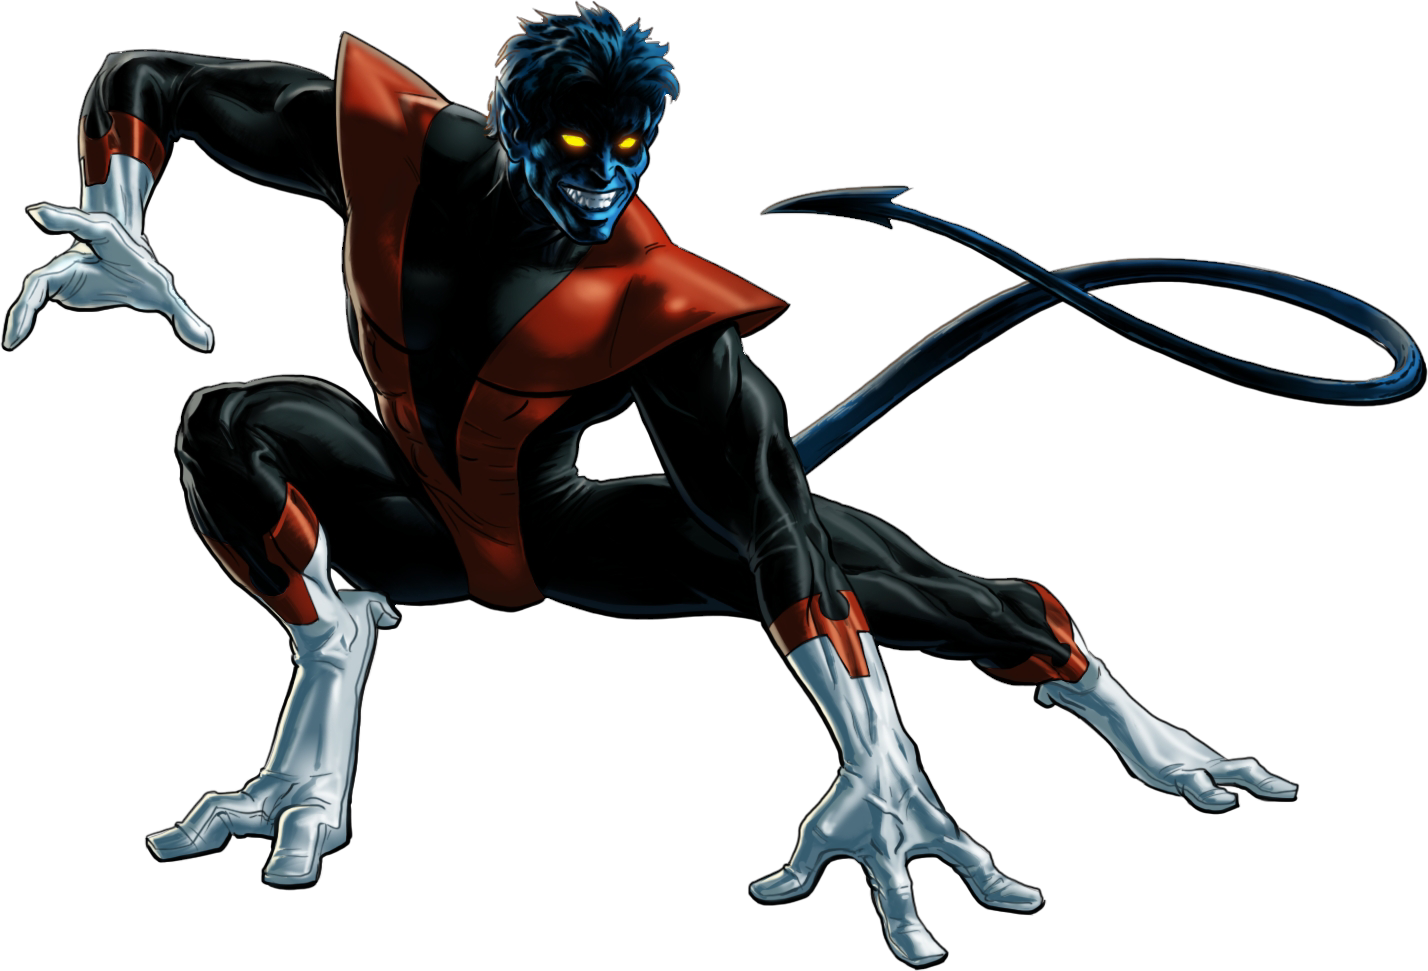 http://www.gamerfocus.co/wp-content/uploads/2015/02/Nightcrawler-X-Men.png